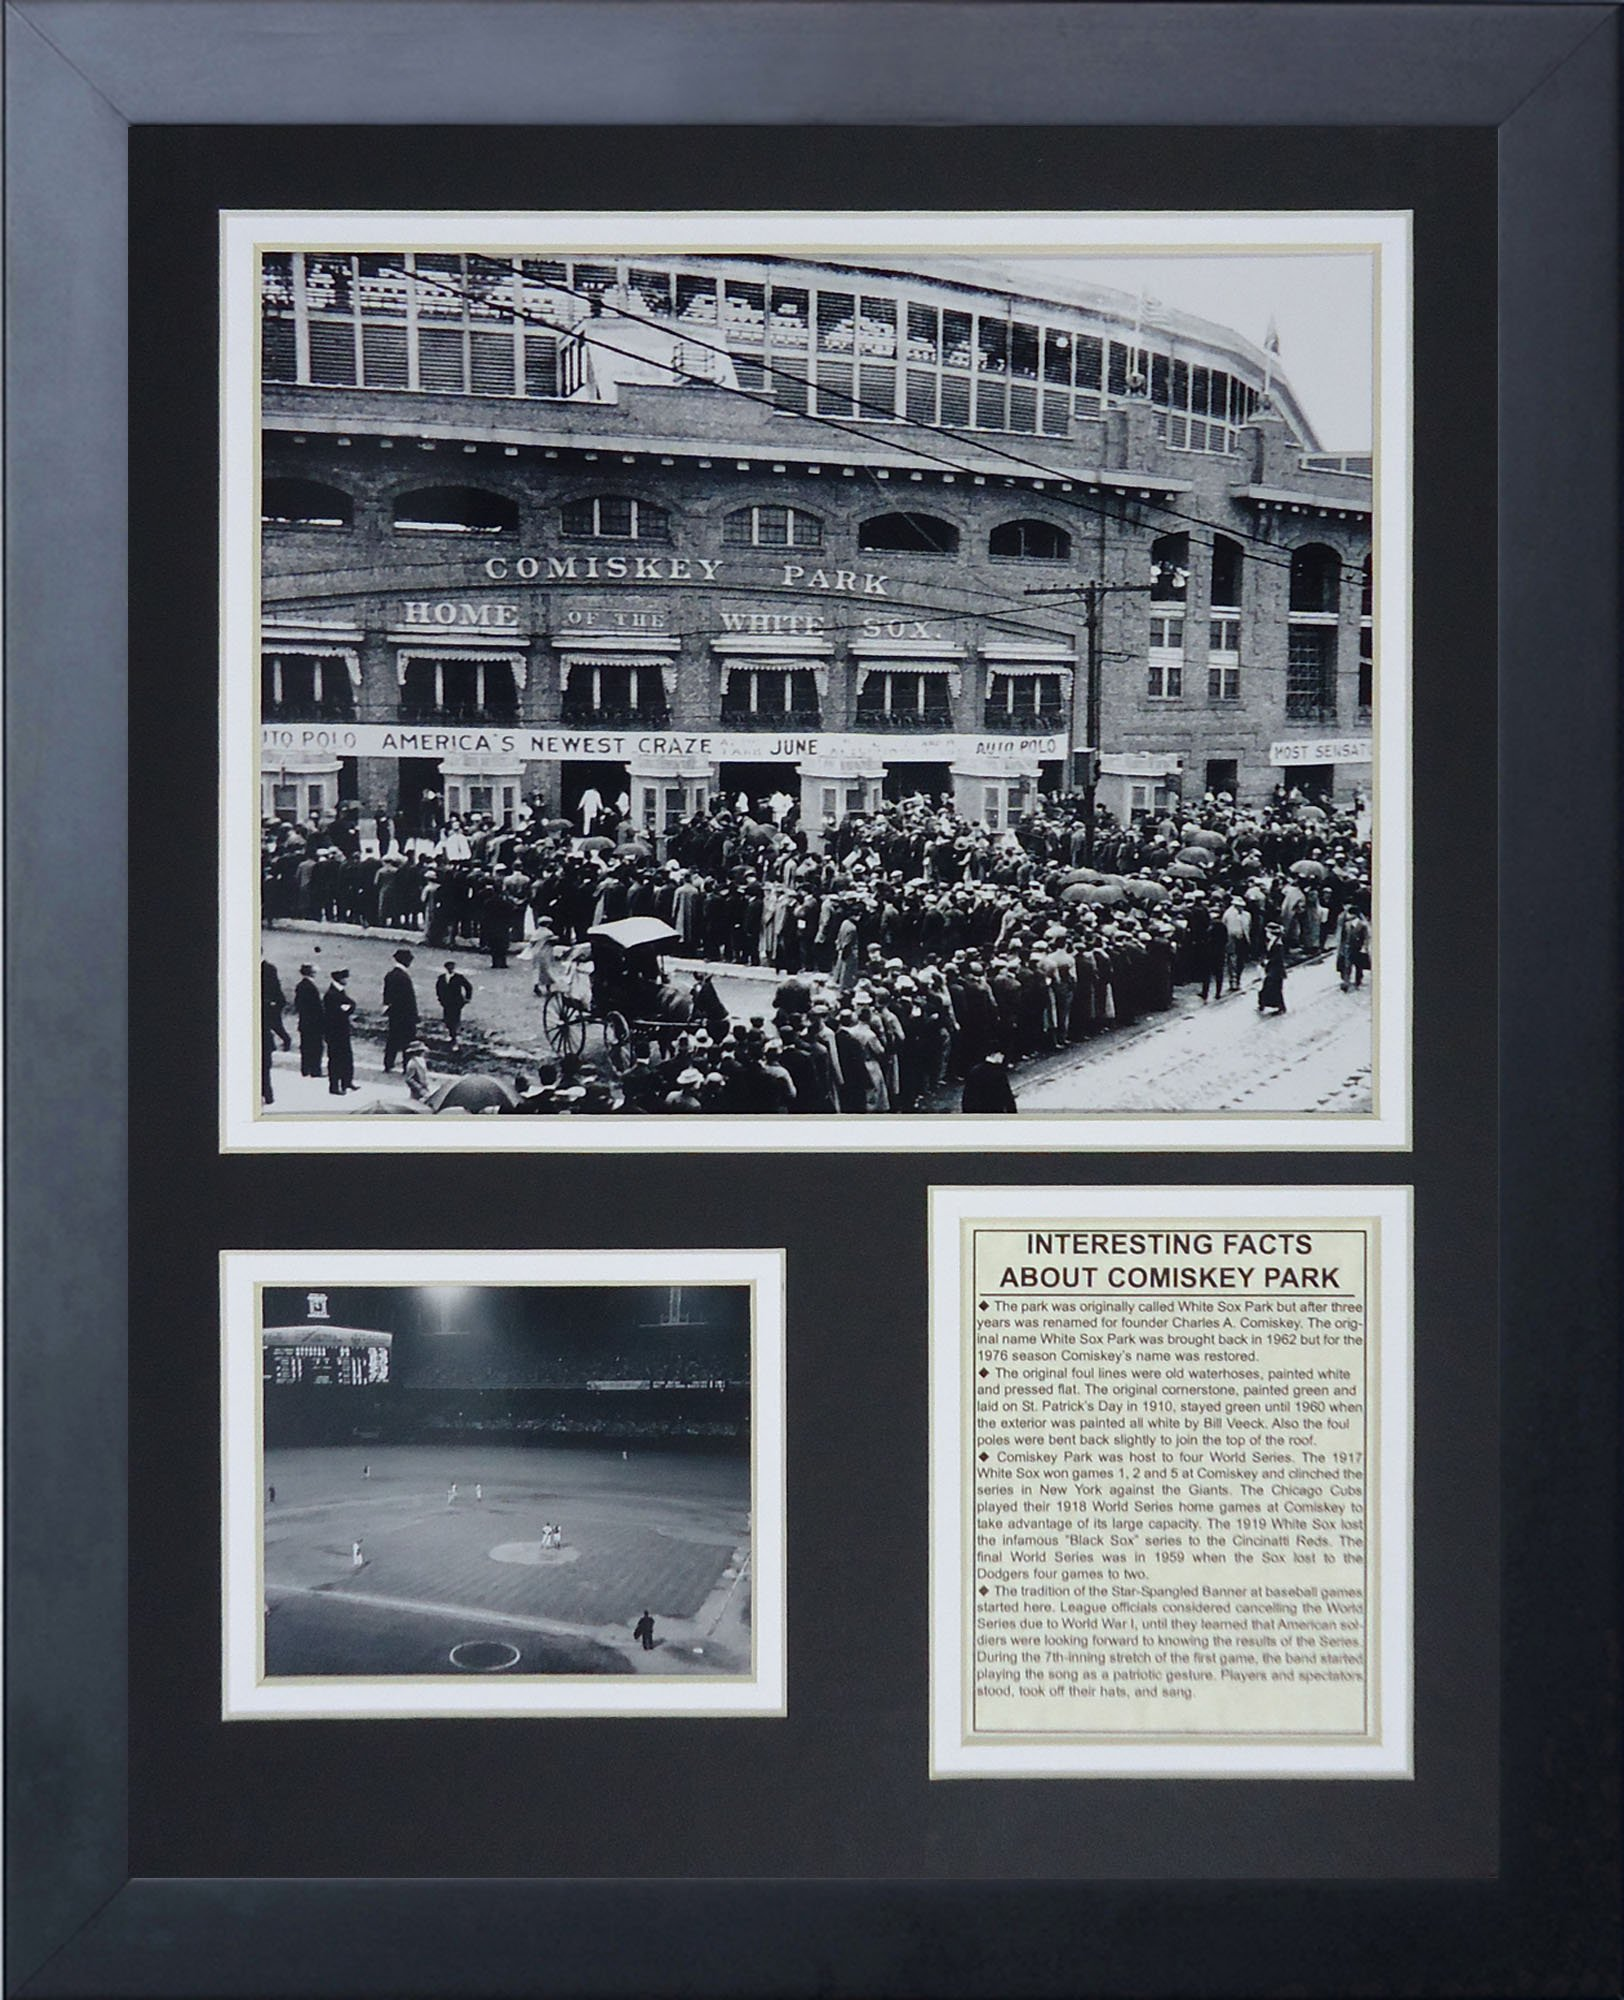 Legends Never Die 1913 Comiskey Park Framed Photo Collage, 11 x 14-Inch